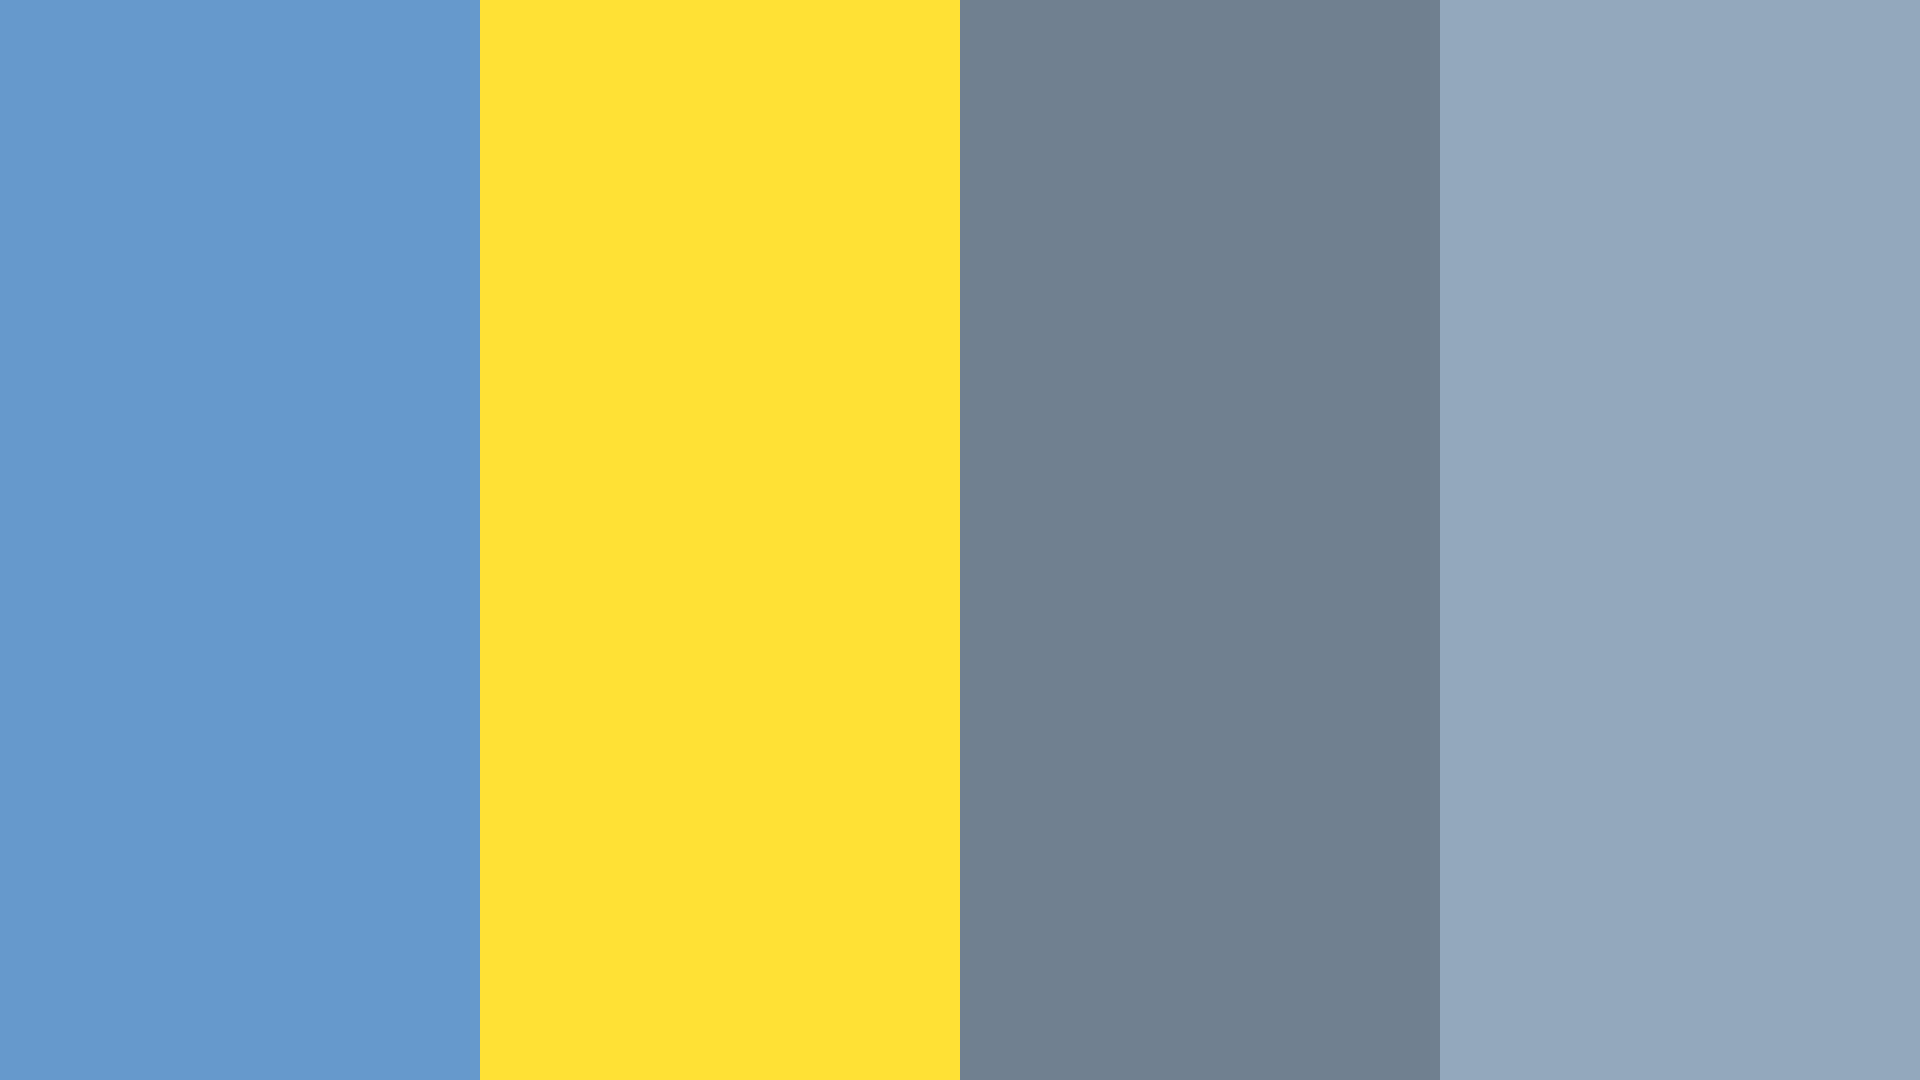 Blue Yellow Gray Color Palette In 2020 Blue Yellow Grey Color